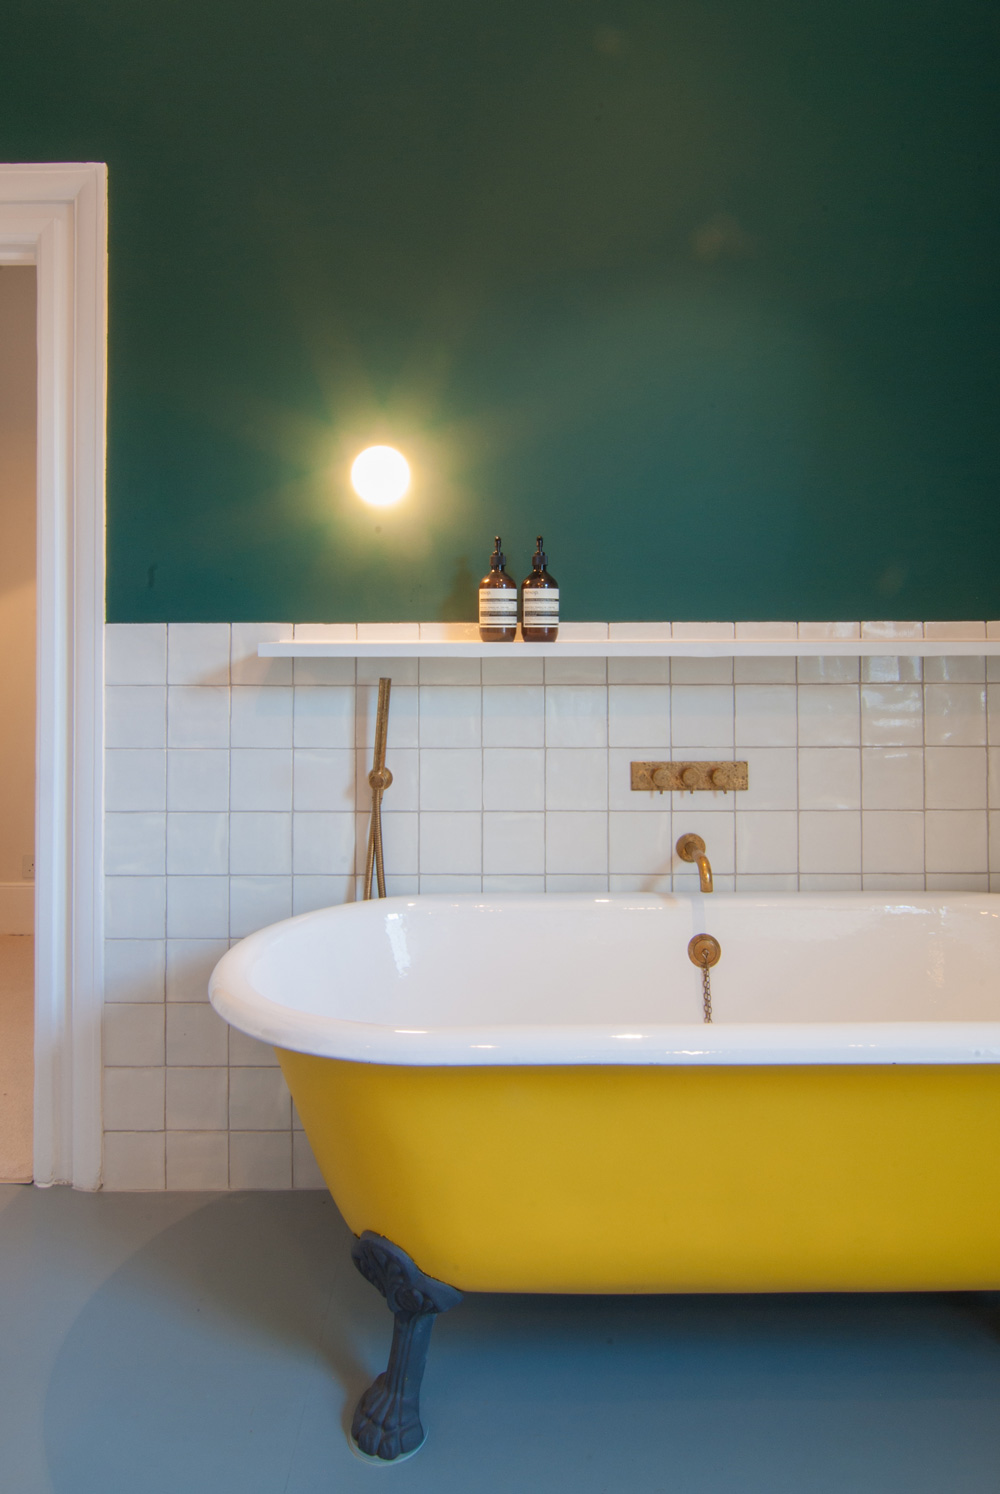 Leytonstone-Renovation-Teal-Bathroom-Yellow-Bath-Brass-Refurbishment